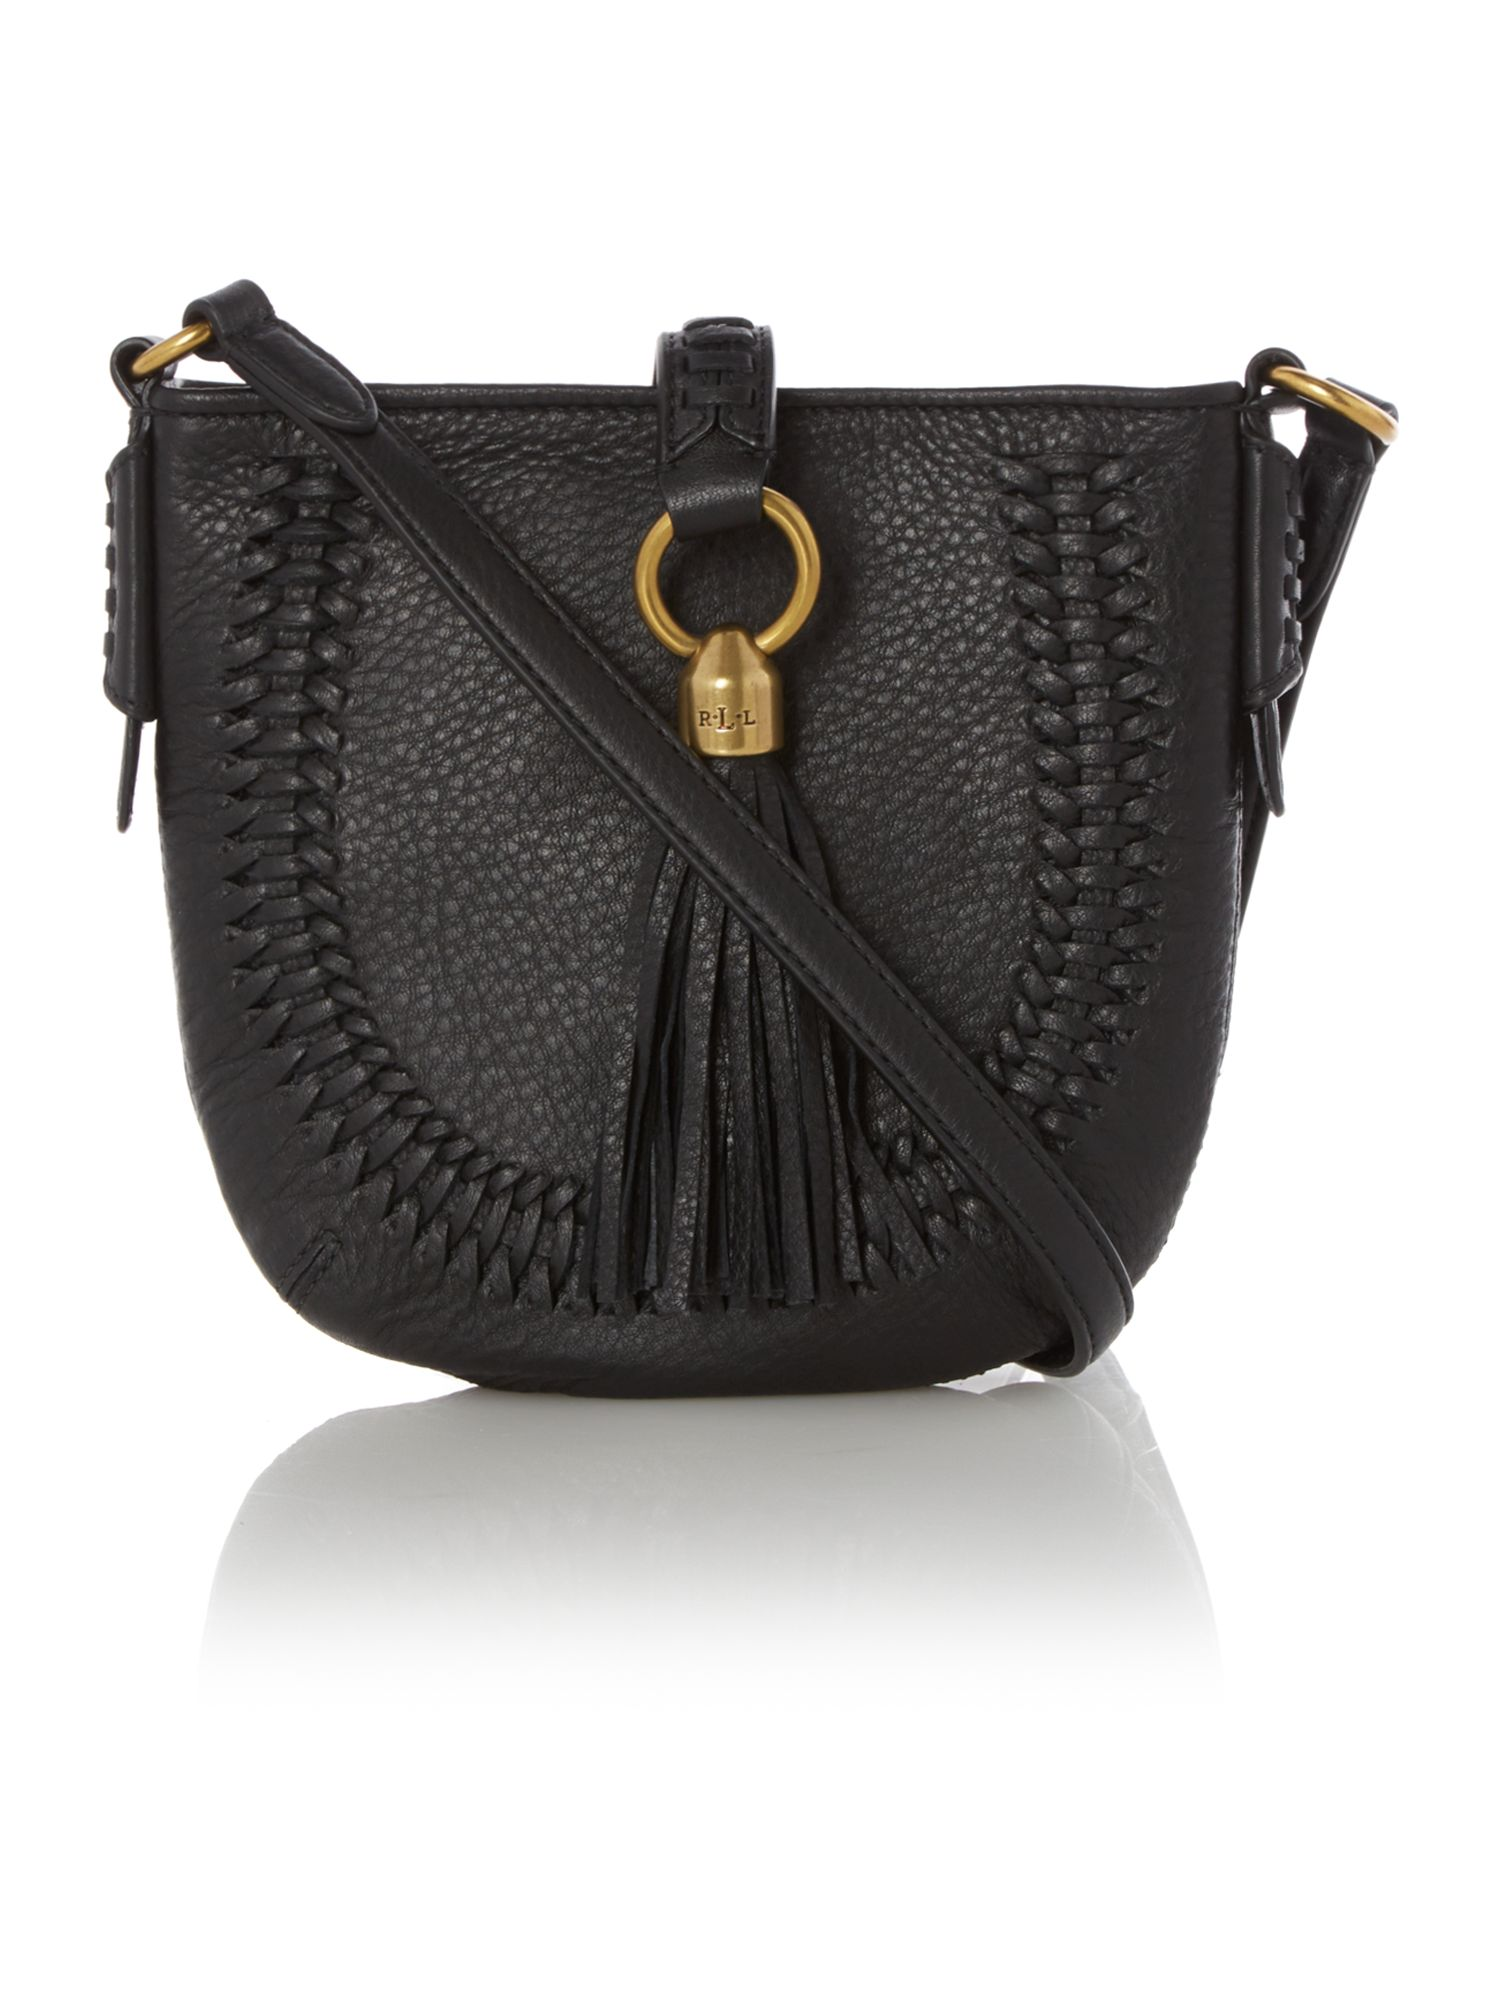 Indian cove black tassle crossbody bag